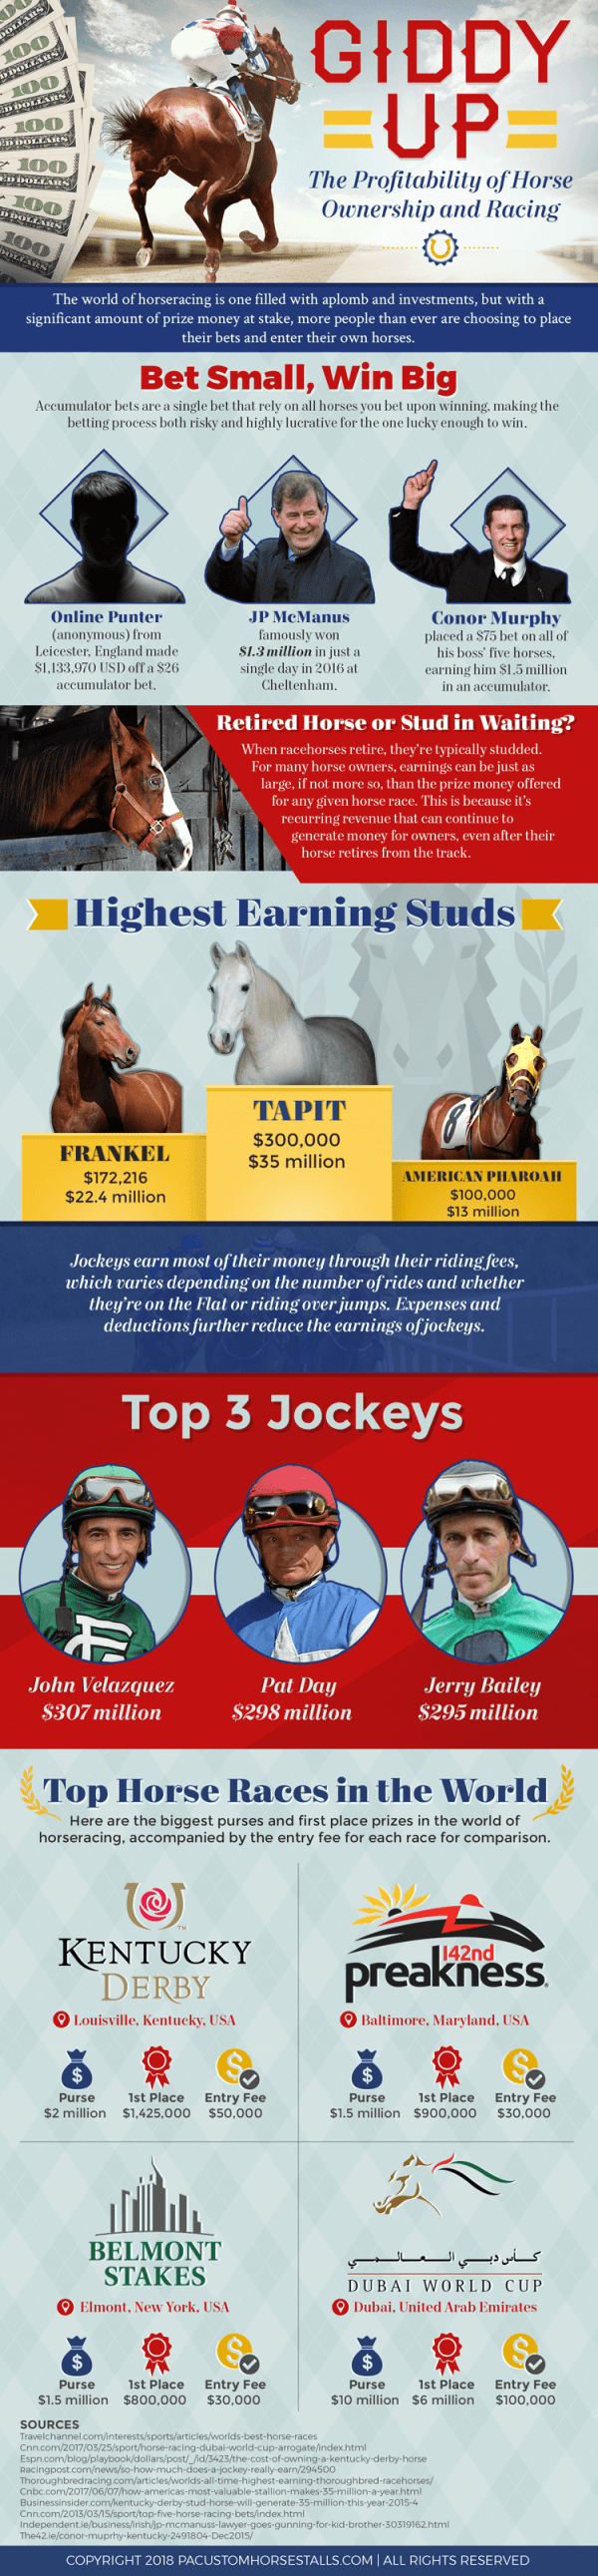 The Profitability of Horse Ownership and Racing-infographic